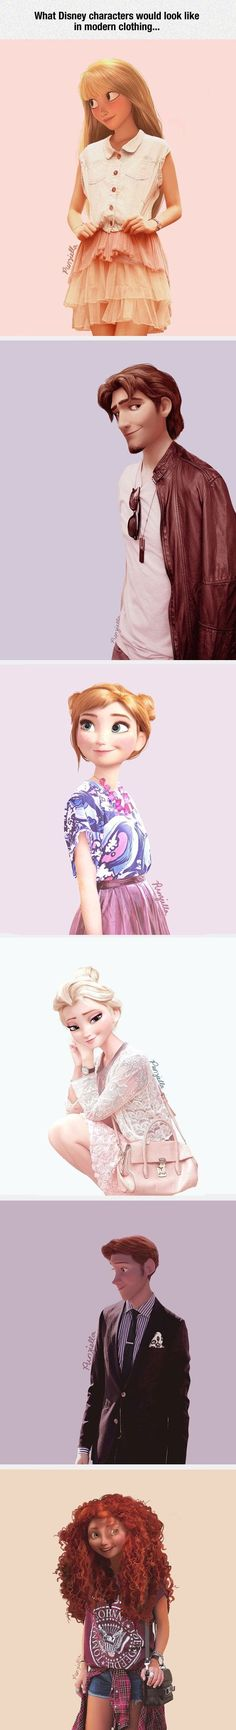 If Disney characters wore modern clothing - Cute, but if Rapunzel had bangs, wouldn't they have turned brown? ;-)